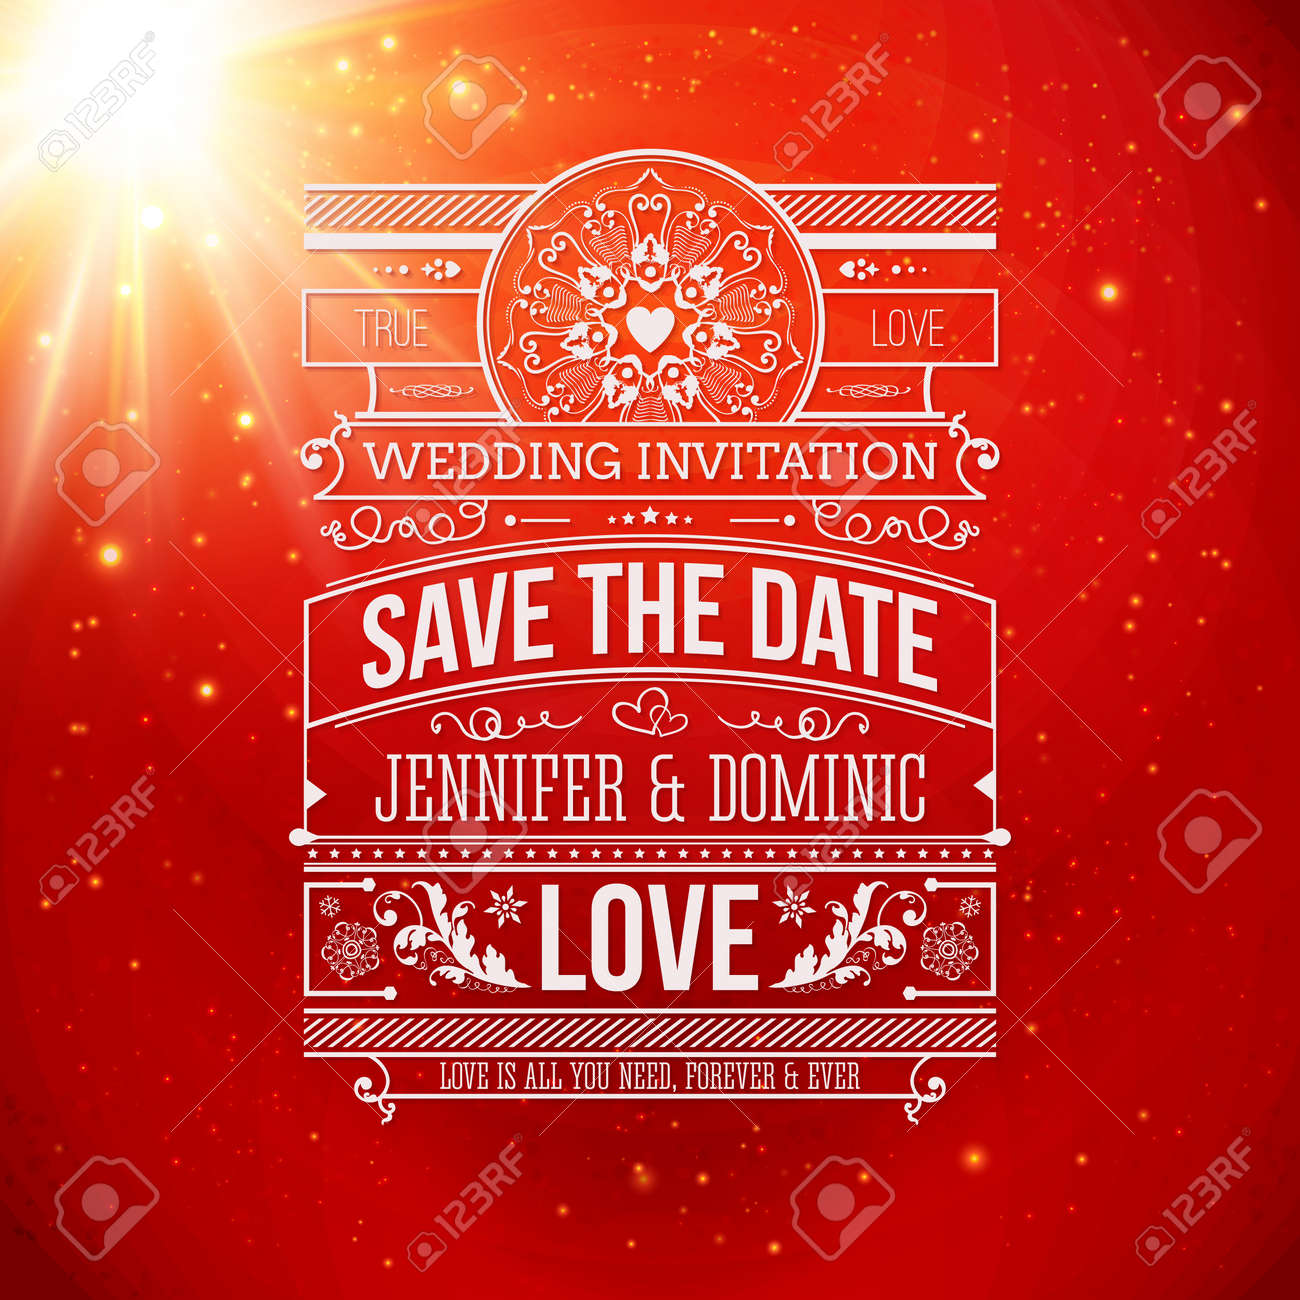 Save The Date For Personal Holiday. Wedding Invitation On A Classic ...